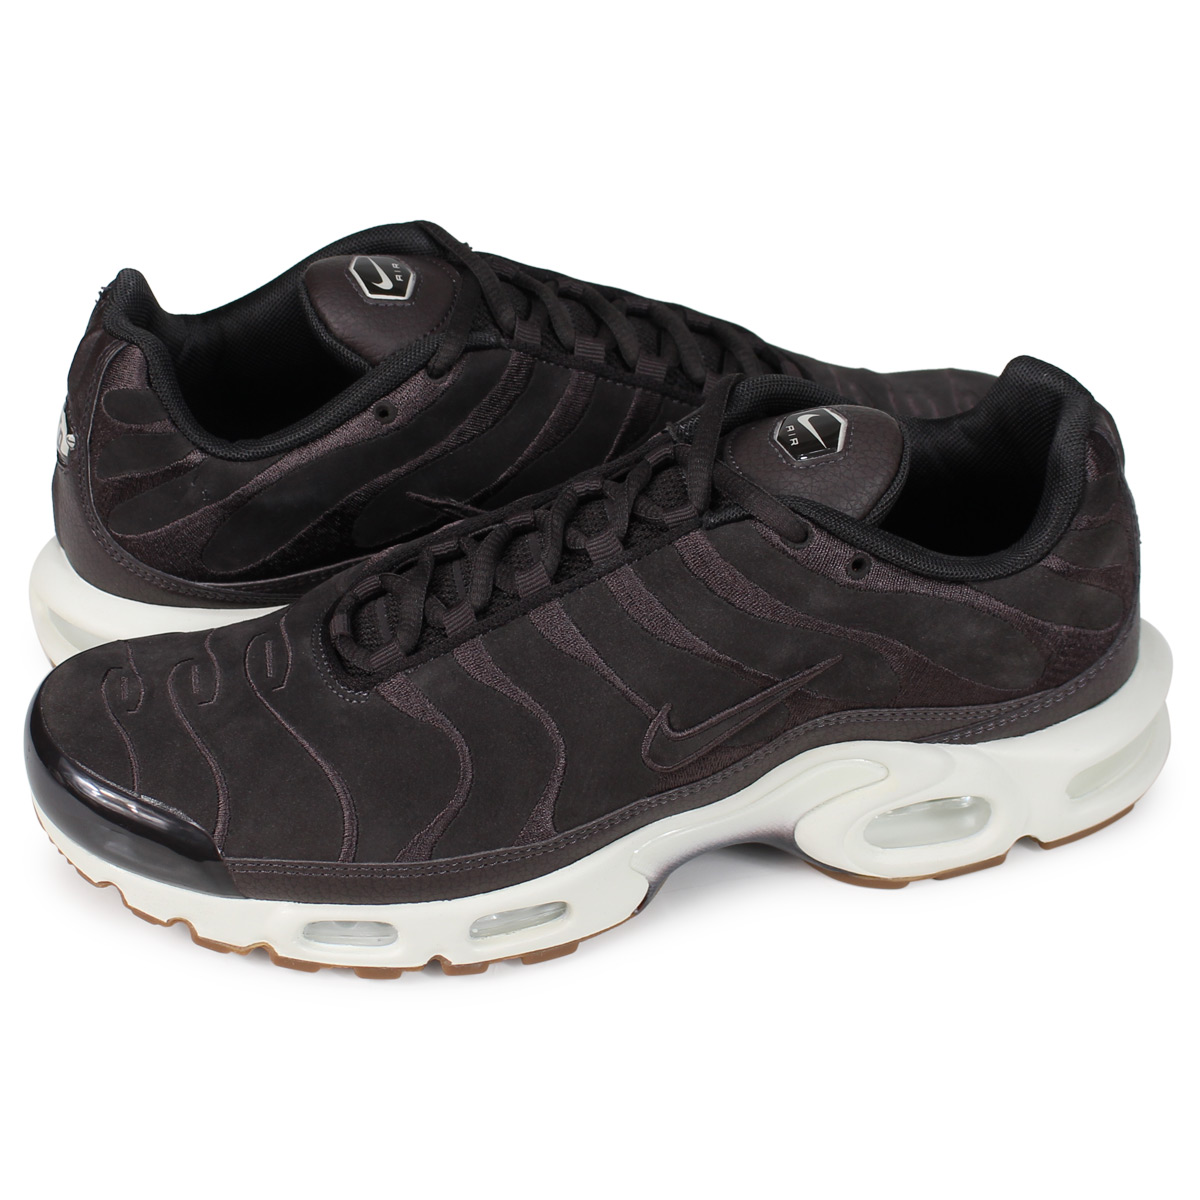 d47c6bbbf8 [brand NIKE getting high popularity from sneakers freak]. Product AIR MAX  PLUS ...